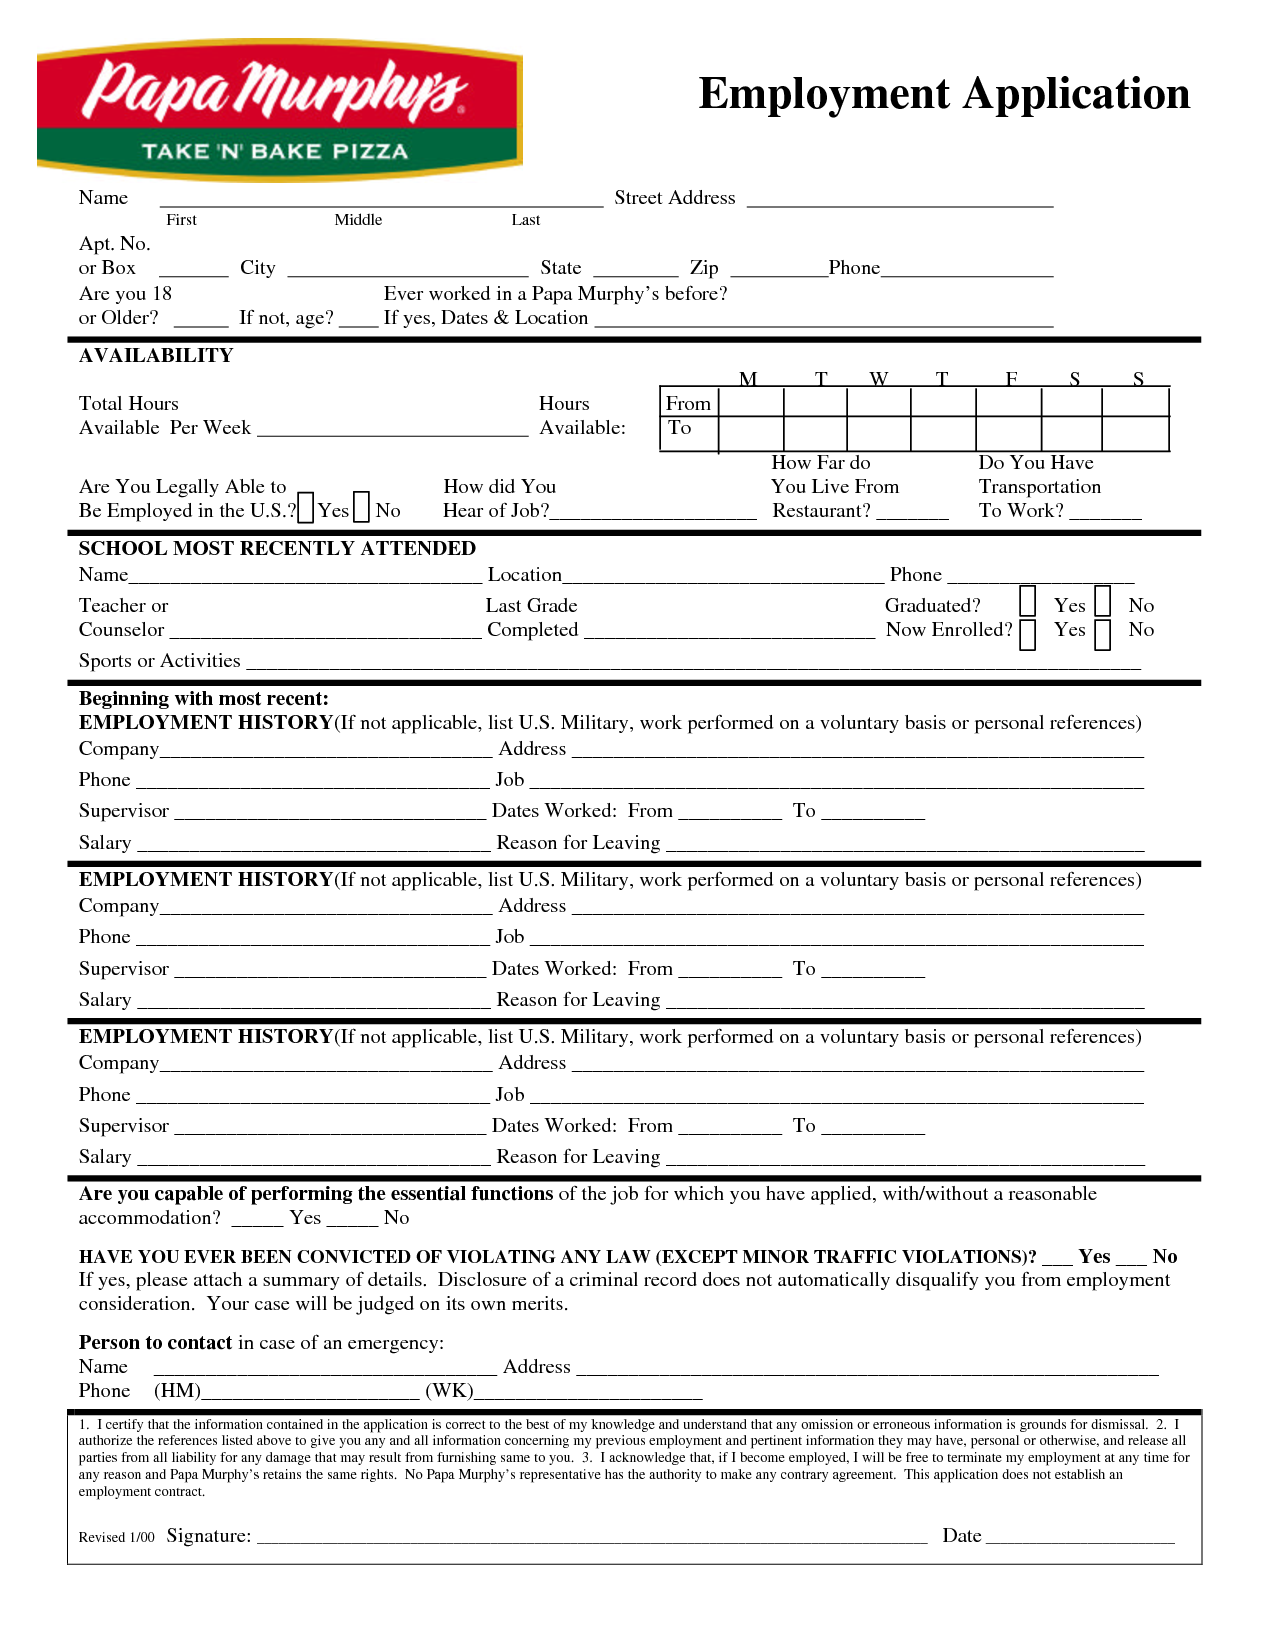 papa murphy's application print out | papa murphy's employment